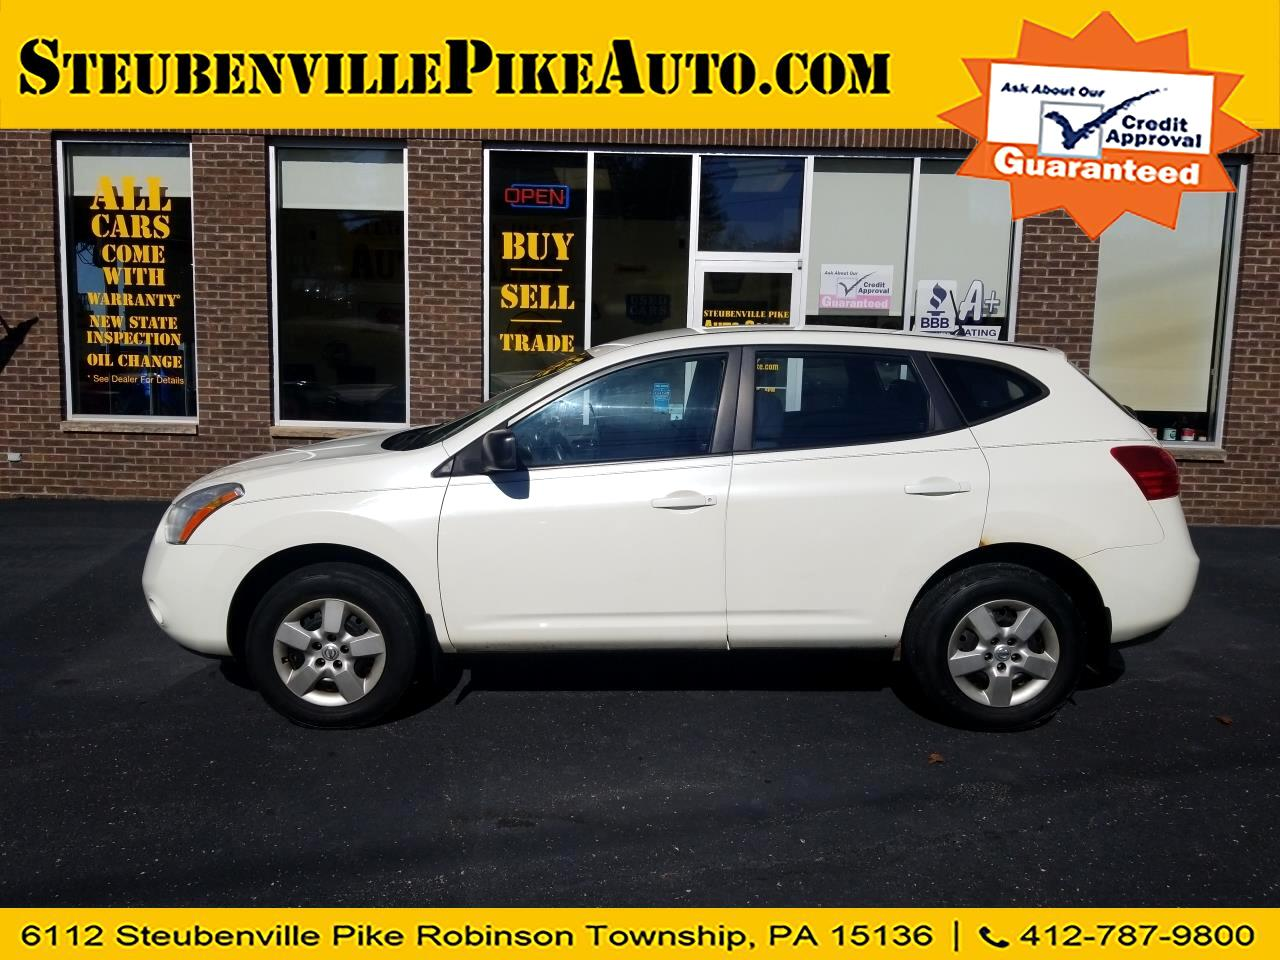 2008 Nissan Rogue 2017.5 AWD S